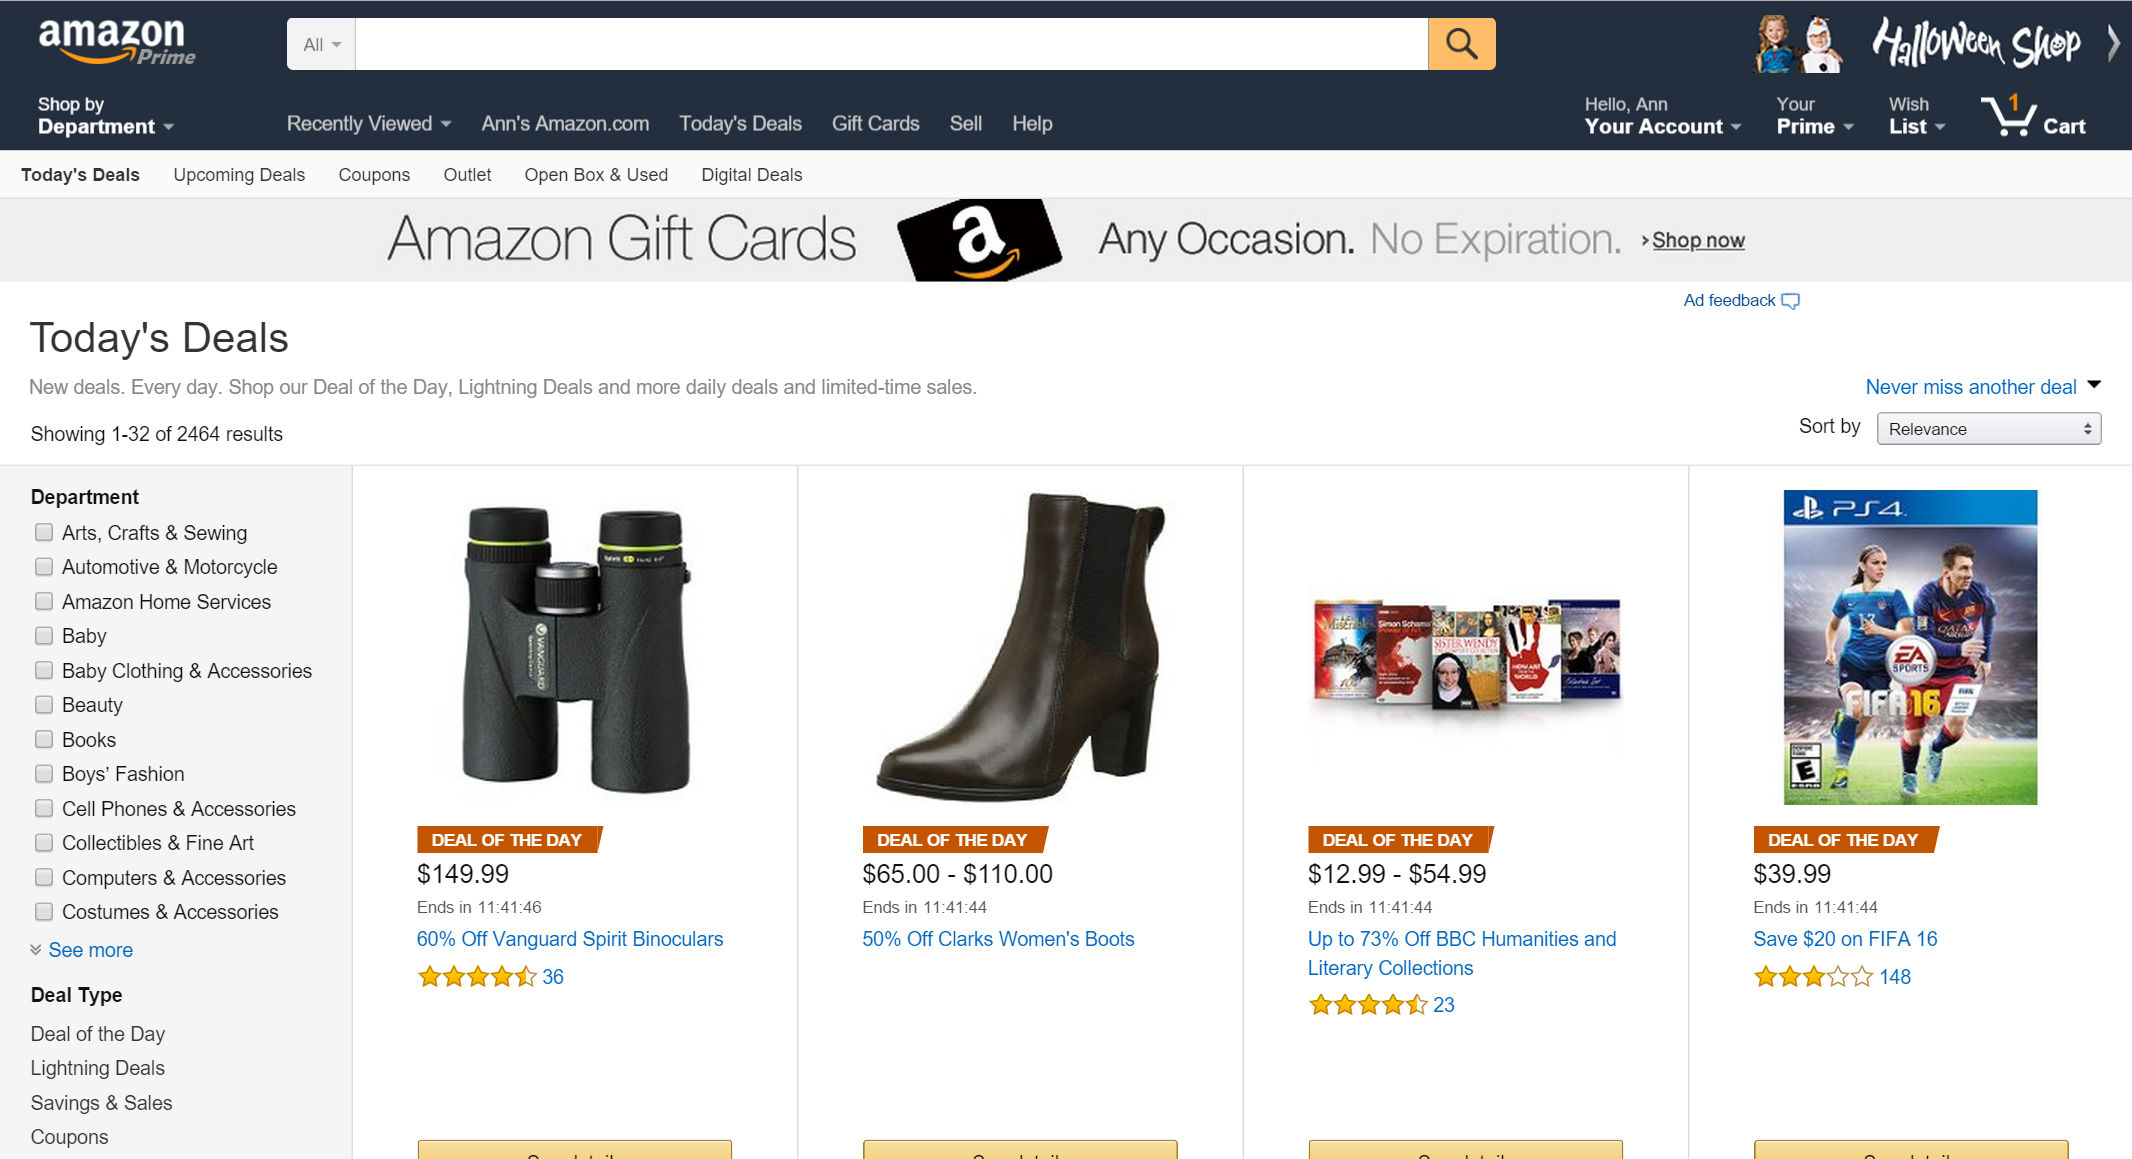 Amazon.com website homepage